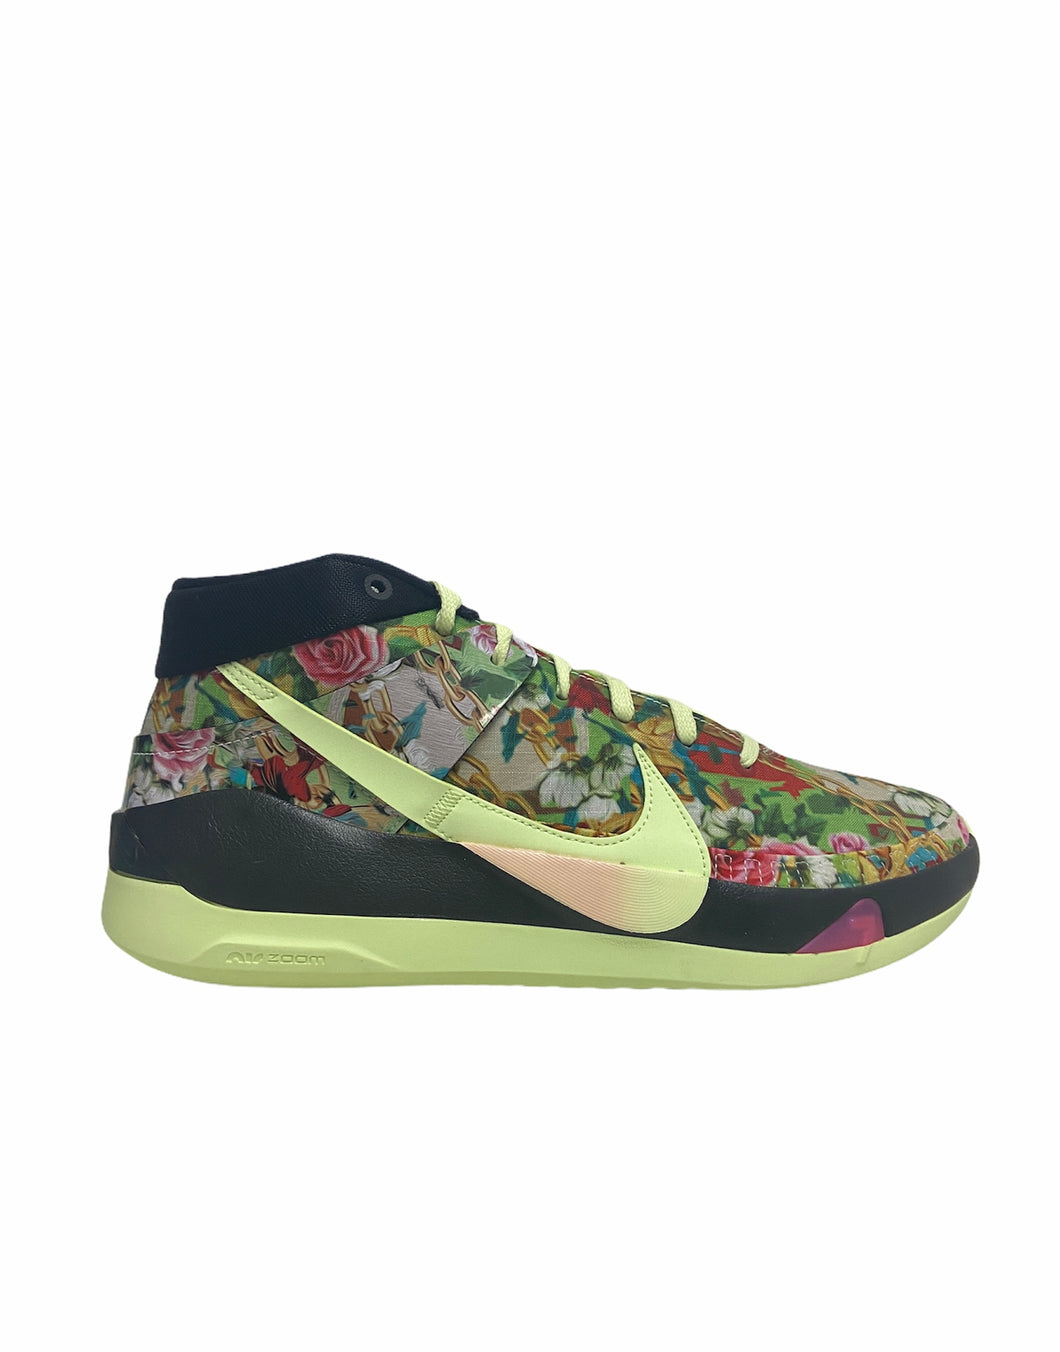 Nike NBA 2K20 X KD 13 FUNK GAMER EXCLUSIVE